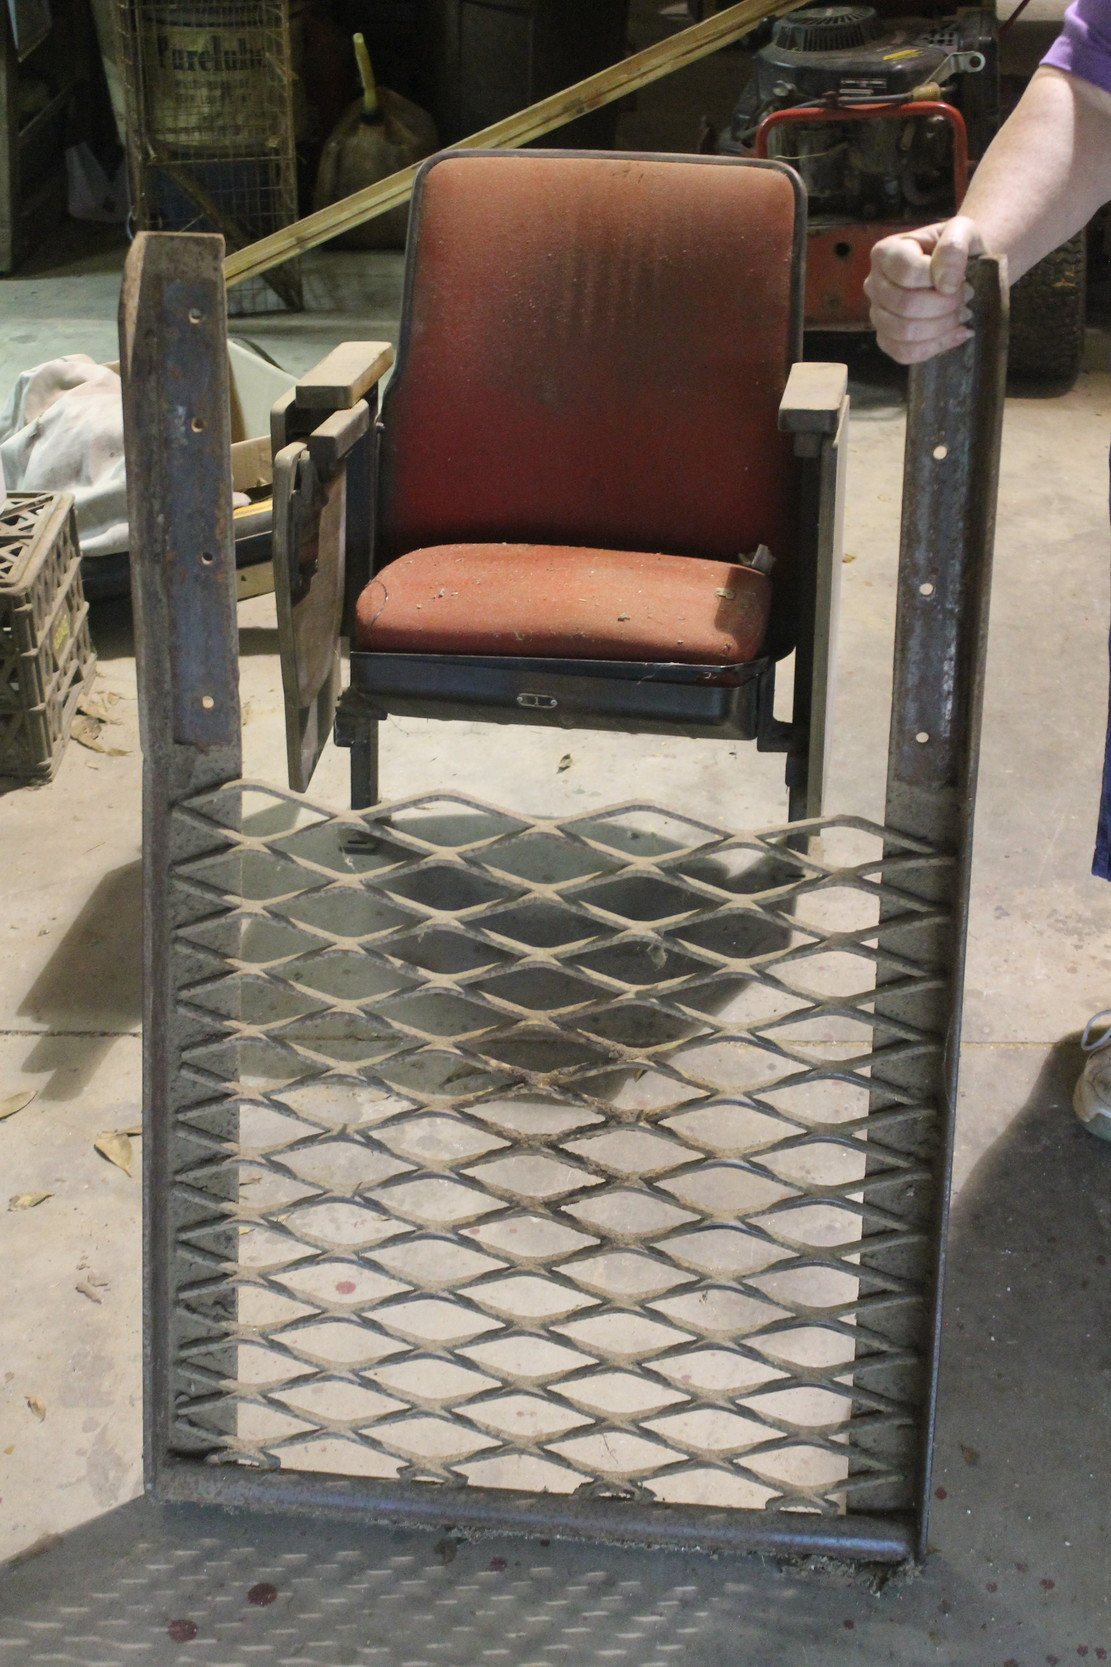 The Baldwin County Heritage Museum is seeking donations to build a new display for the Robertsdale stockyard's auctioneer chair.